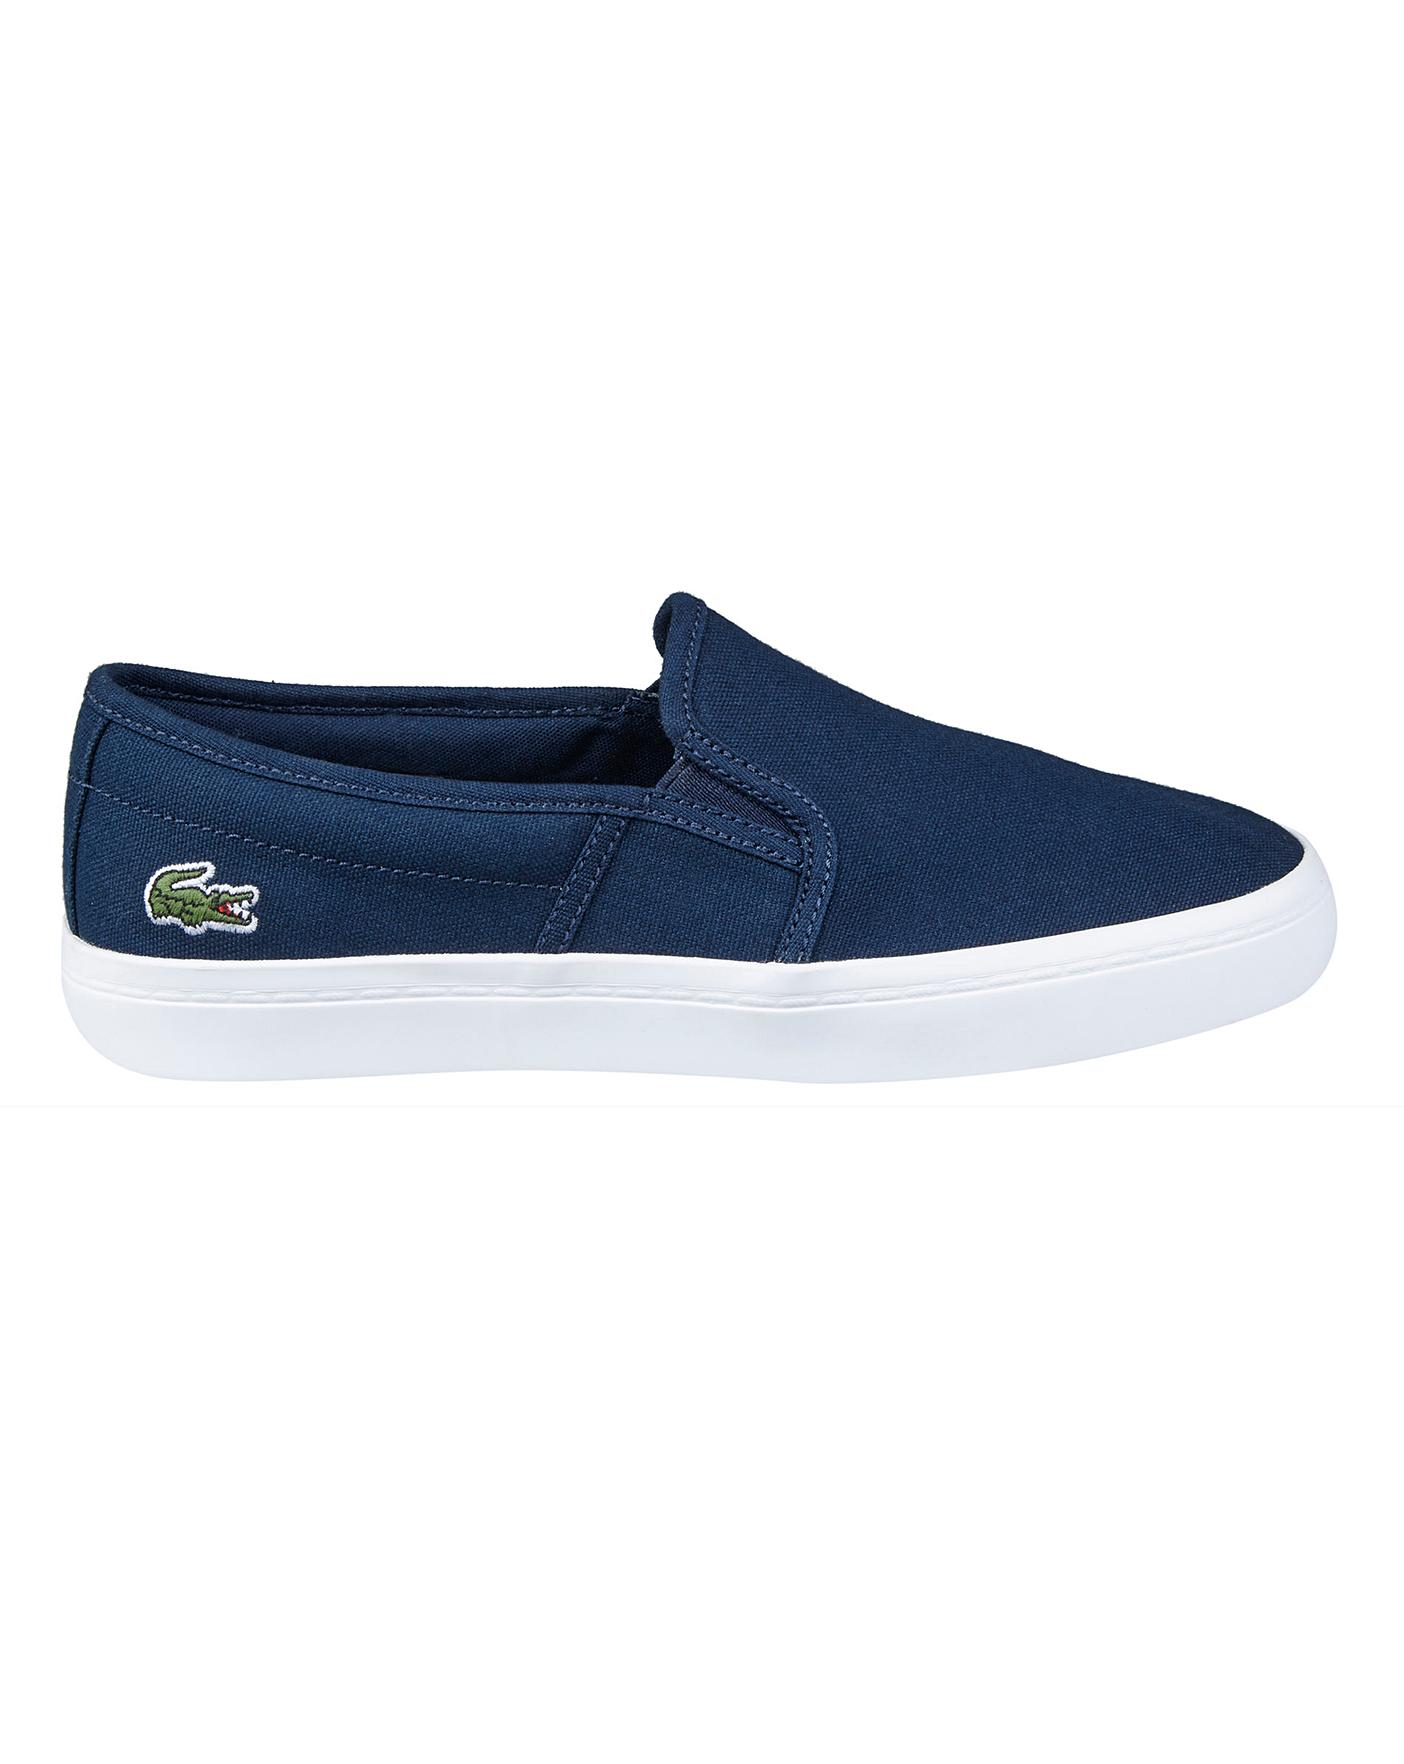 Lacoste Gazon Slip On Trainers | Simply Be